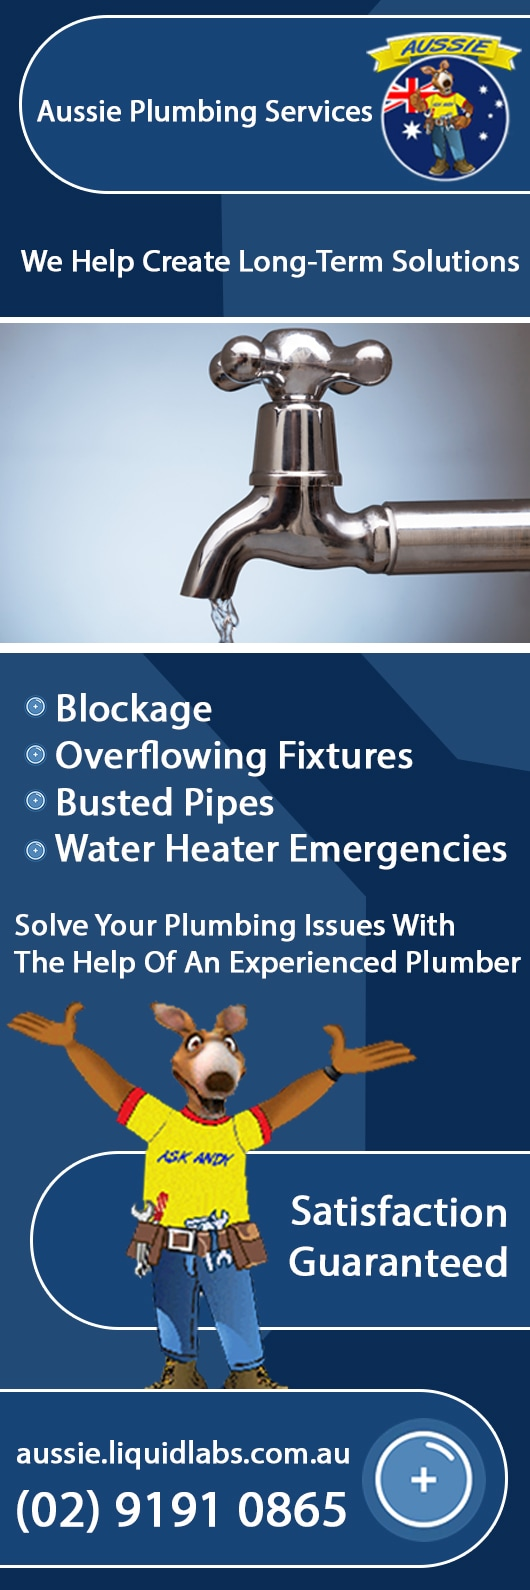 Aussie Plumbing Services Plumbers Gas Fitters Engadine